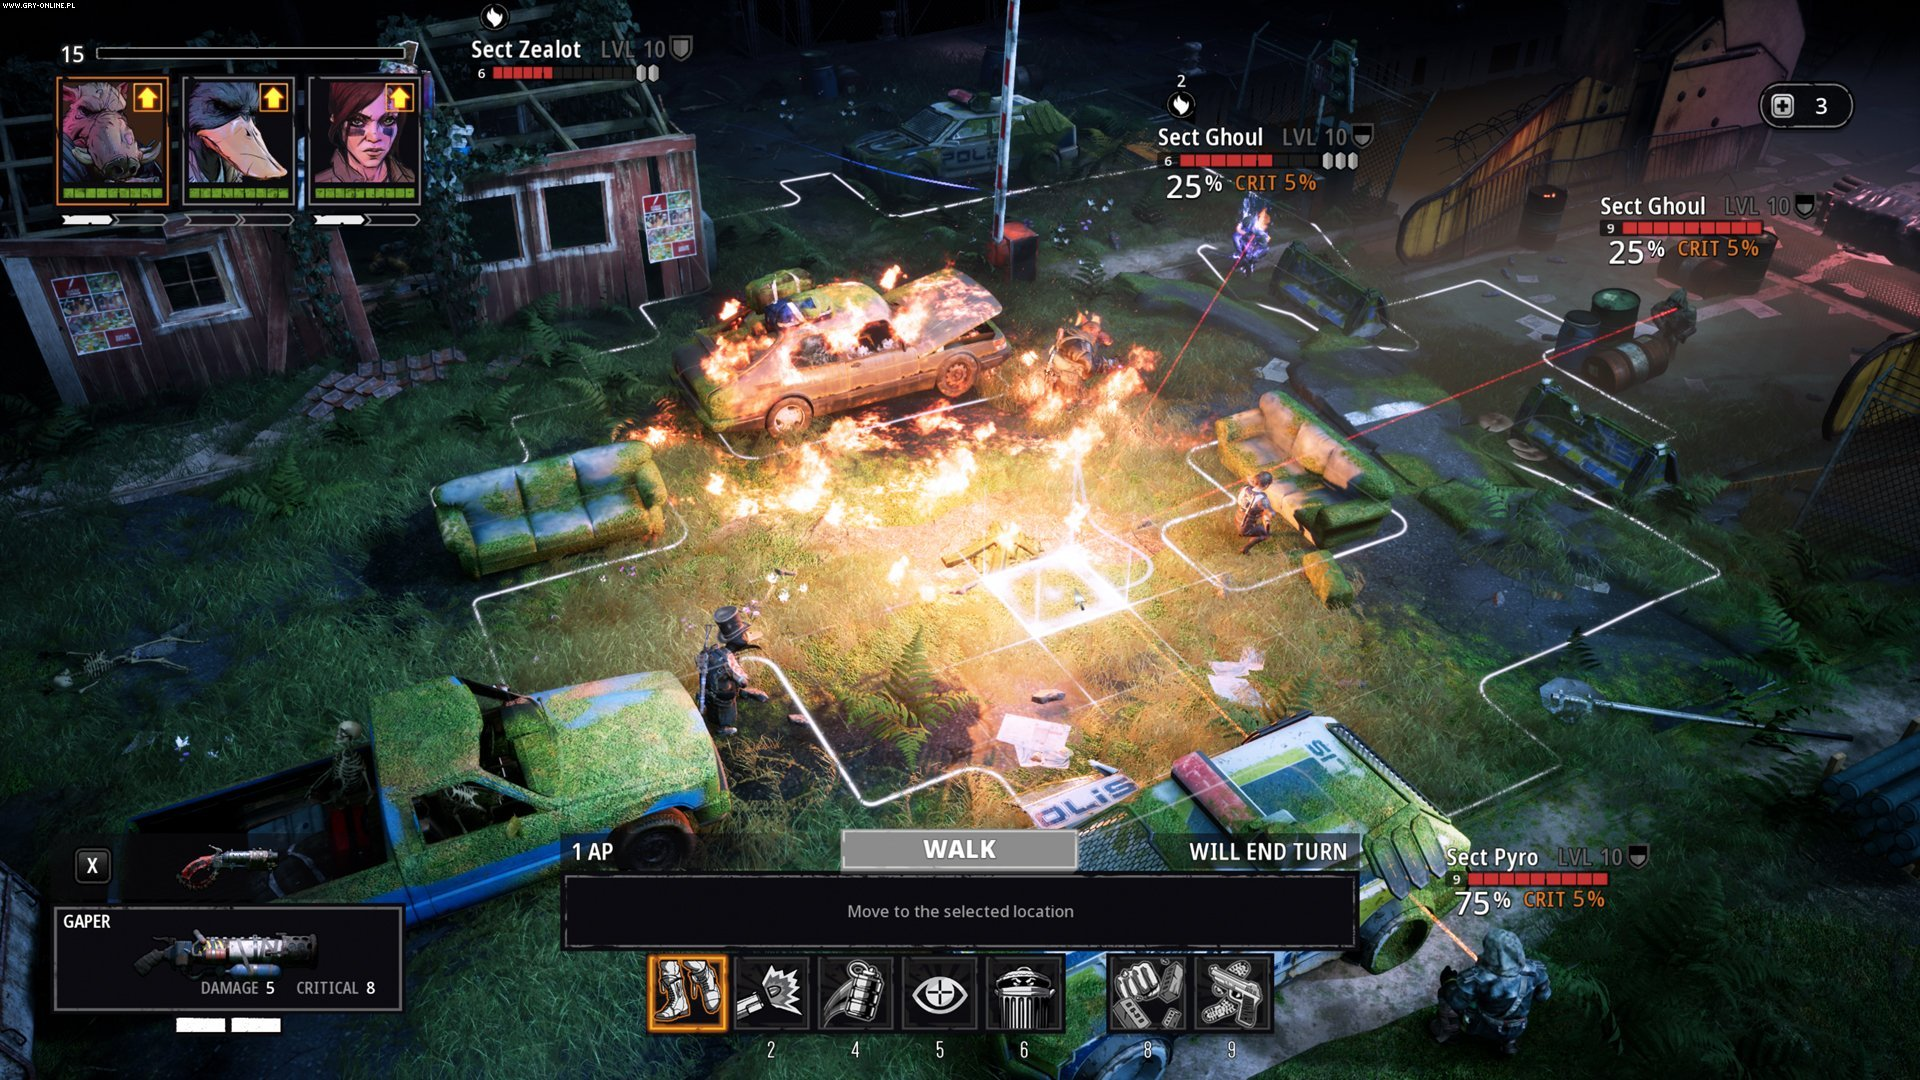 Mutant Year Zero: Road to Eden PC, PS4, XONE Games Image 16/33, The Bearded Ladies, FunCom